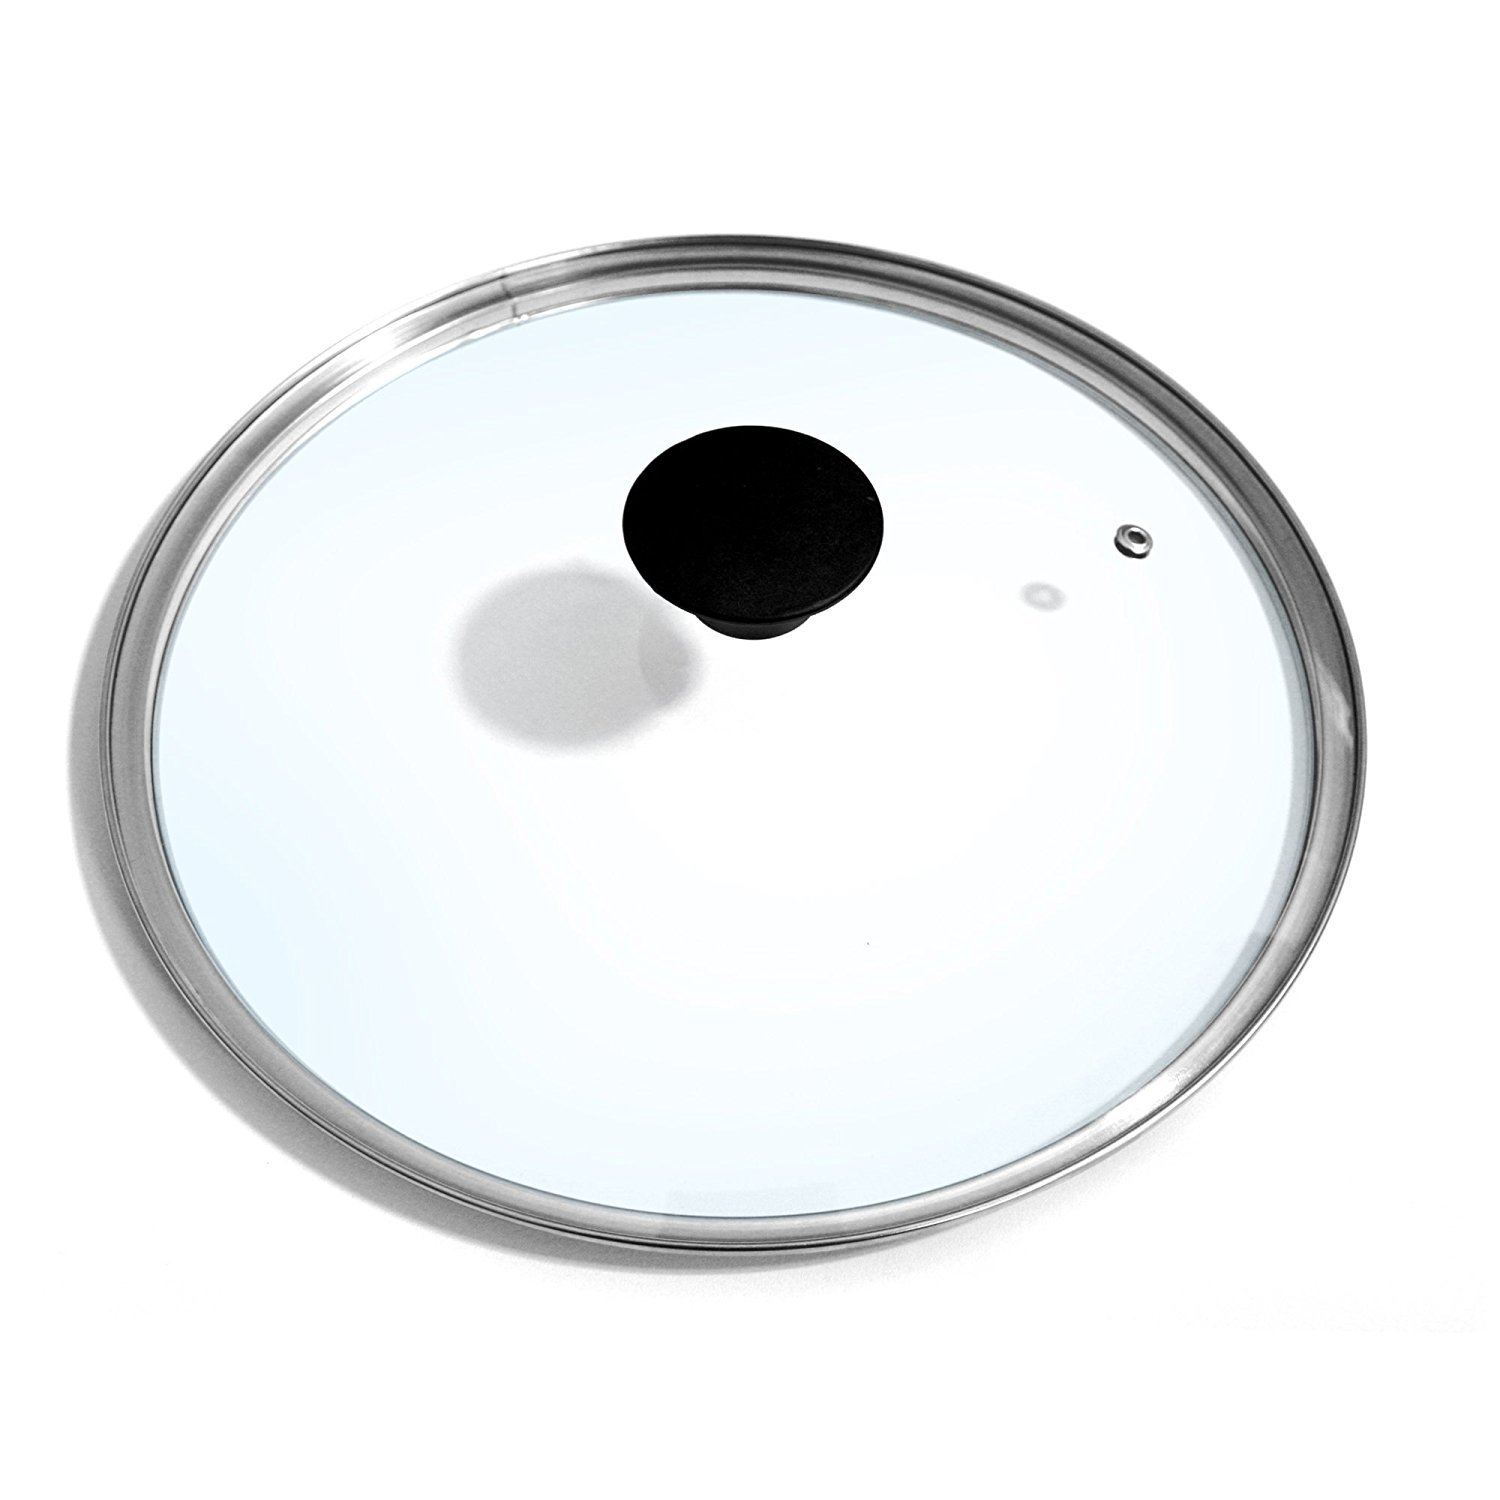 Cook N Home 10.25-Inch/26cm Tempered Glass Lid Cover With Vent, Clear